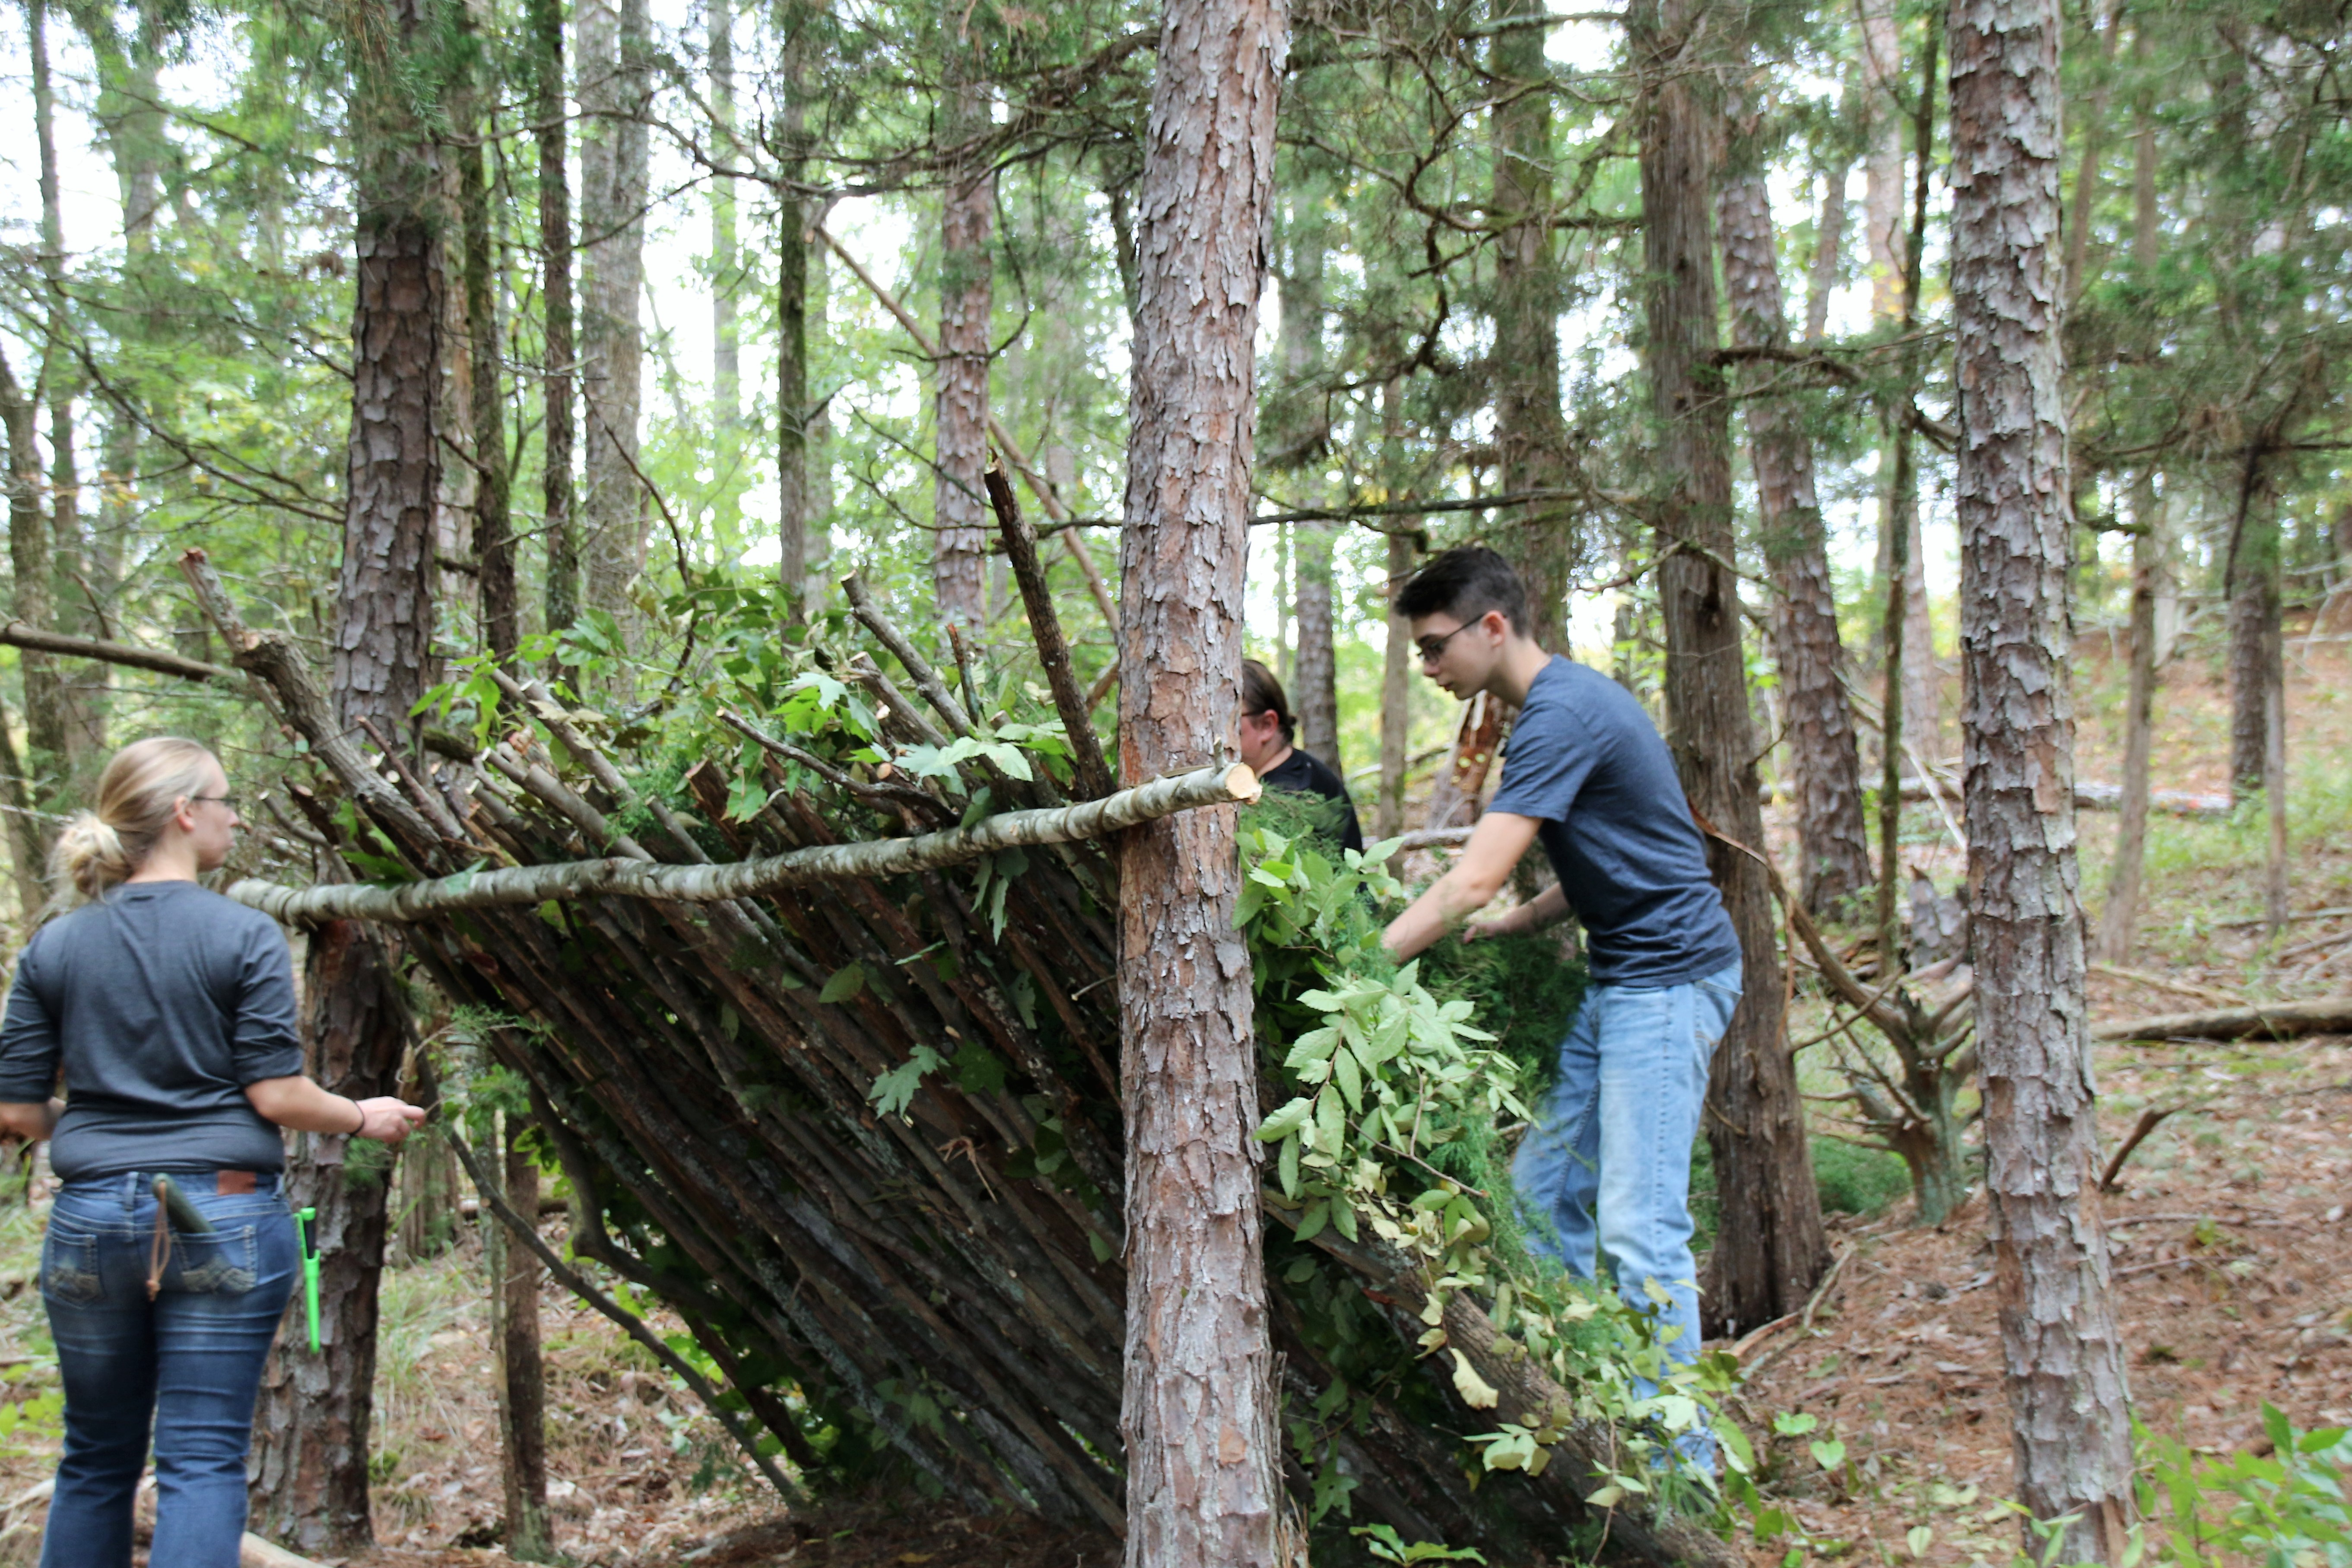 photo of campers building shelter